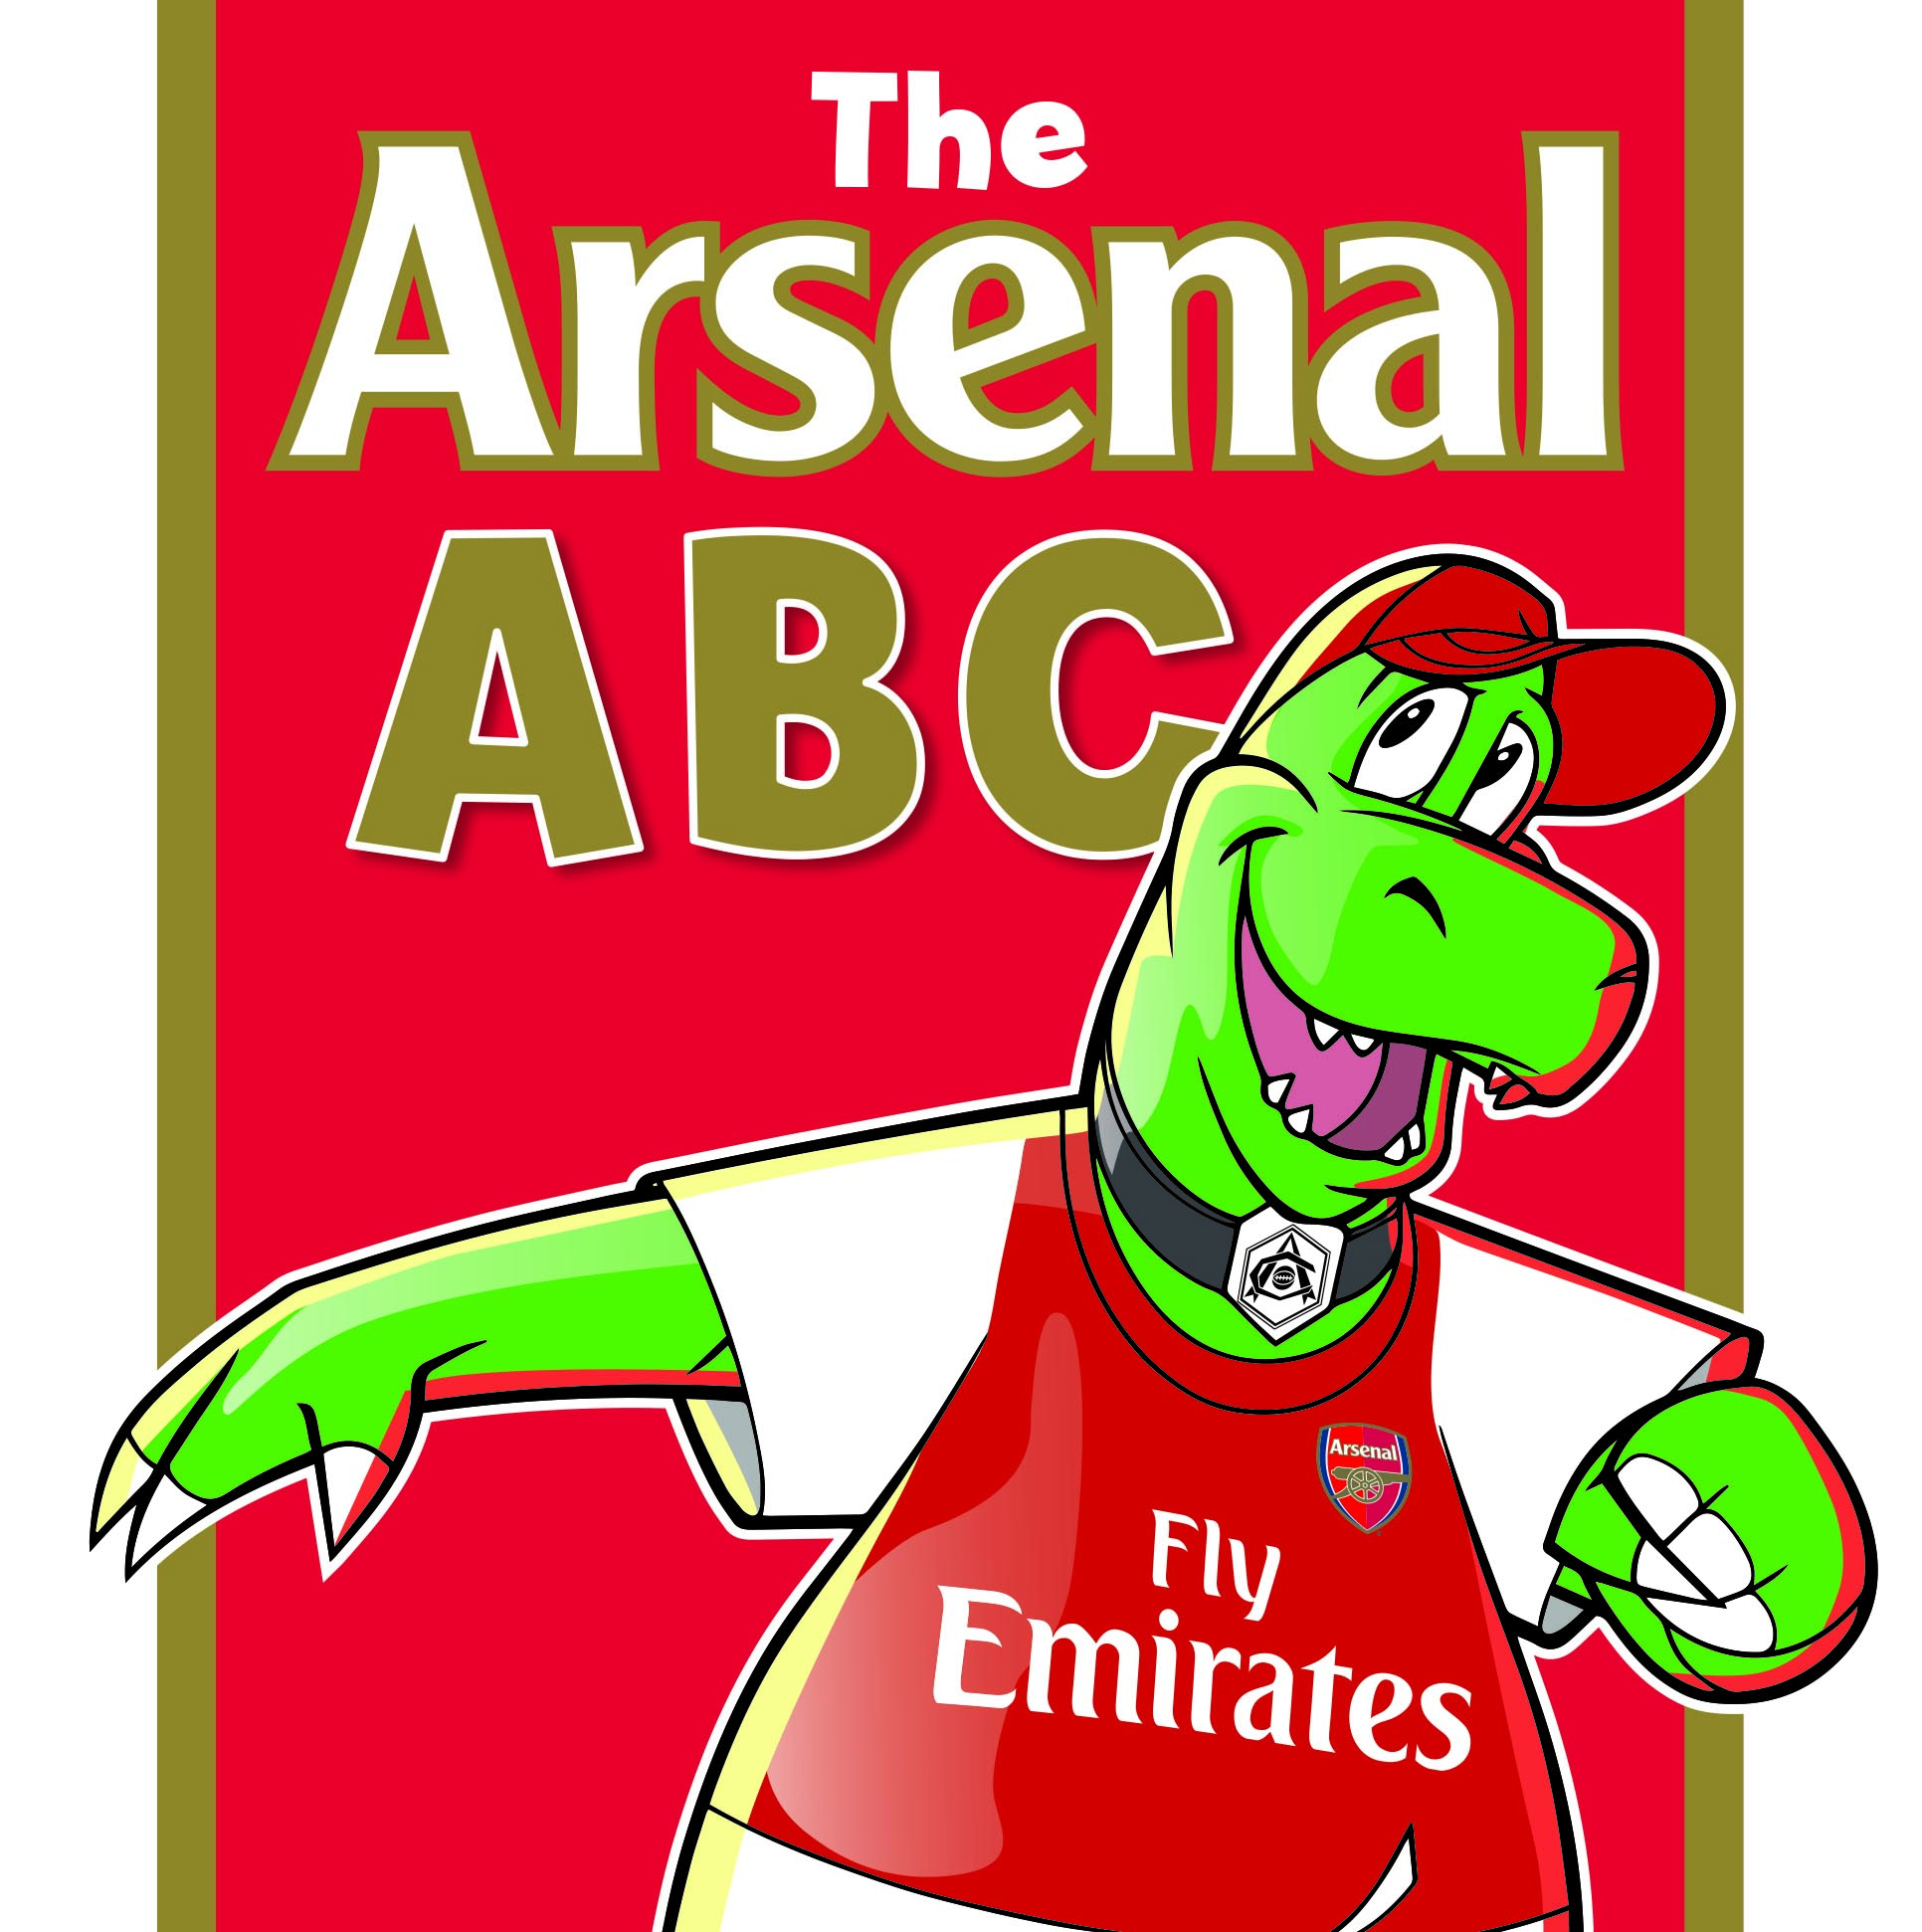 The Arsenal ABC